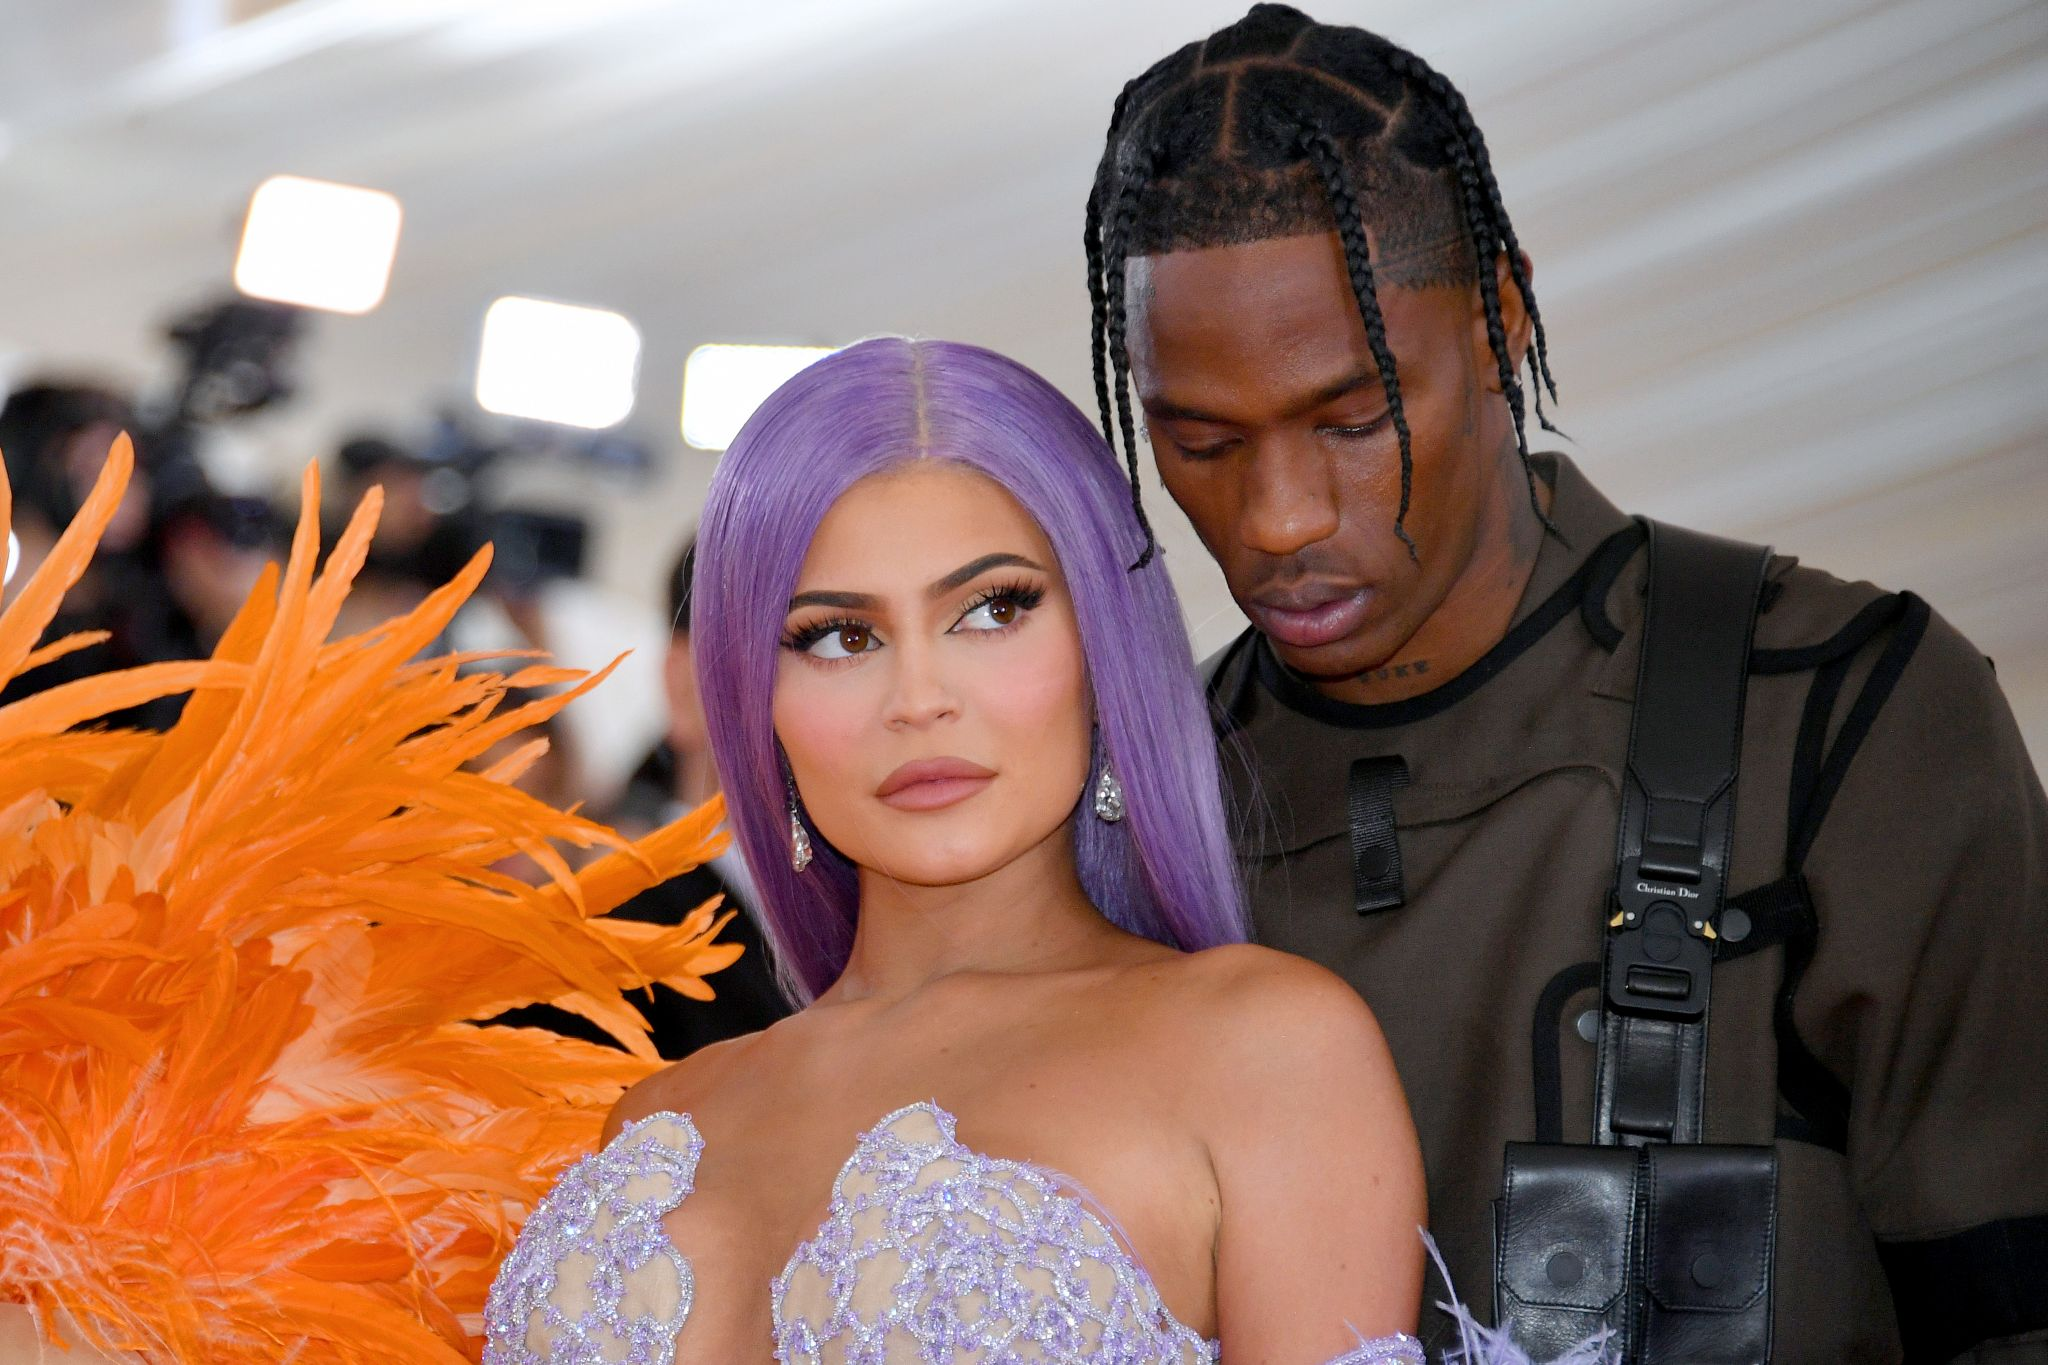 Twitterverse roasts Houston's Travis Scott for his military-inspired fashion miss at 2019 Met Gala